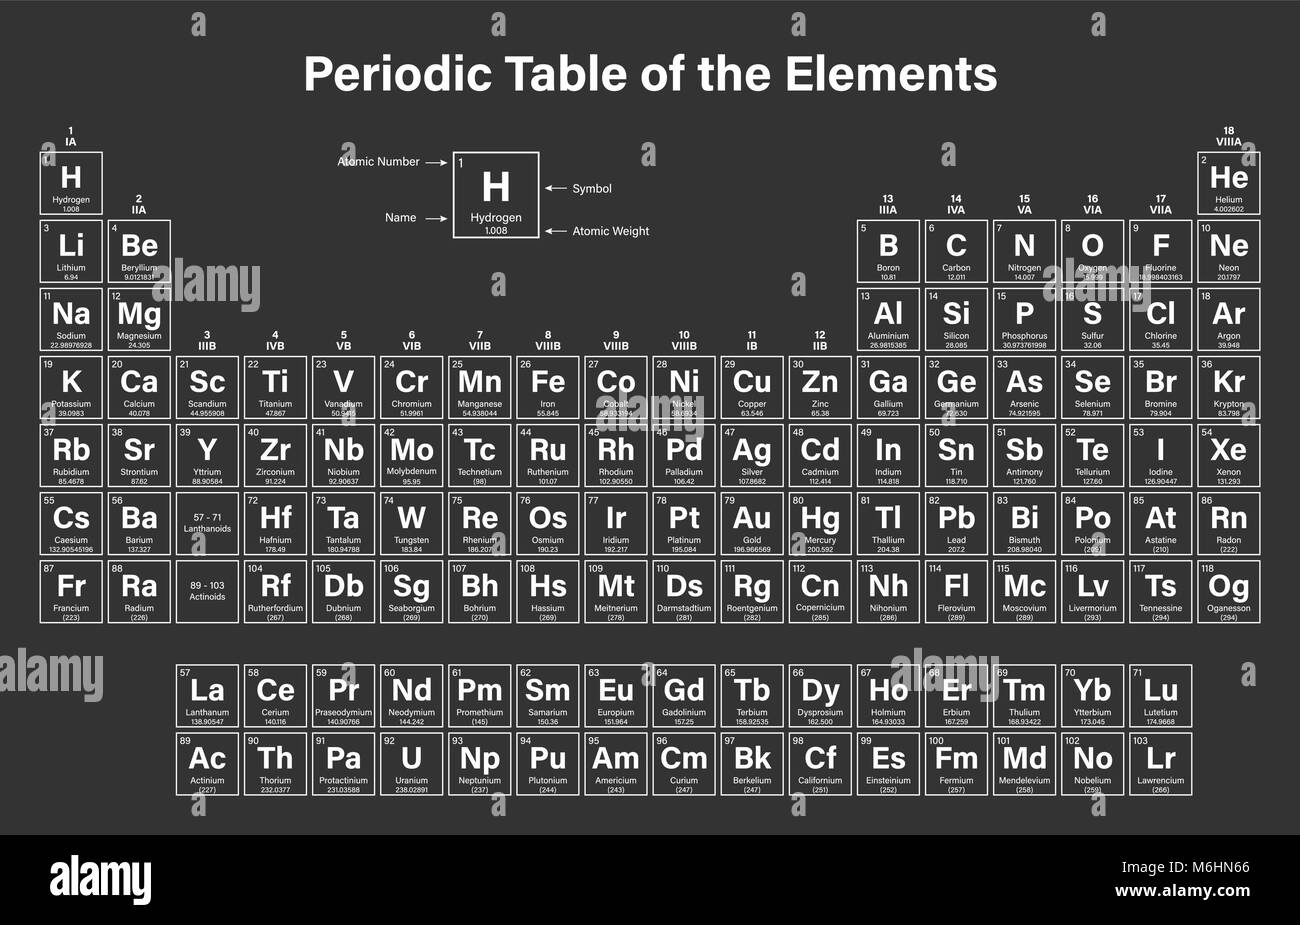 periodic table of the elements vector illustration shows atomic number symbol name and atomic weight - Periodic Table Of Elements Vector